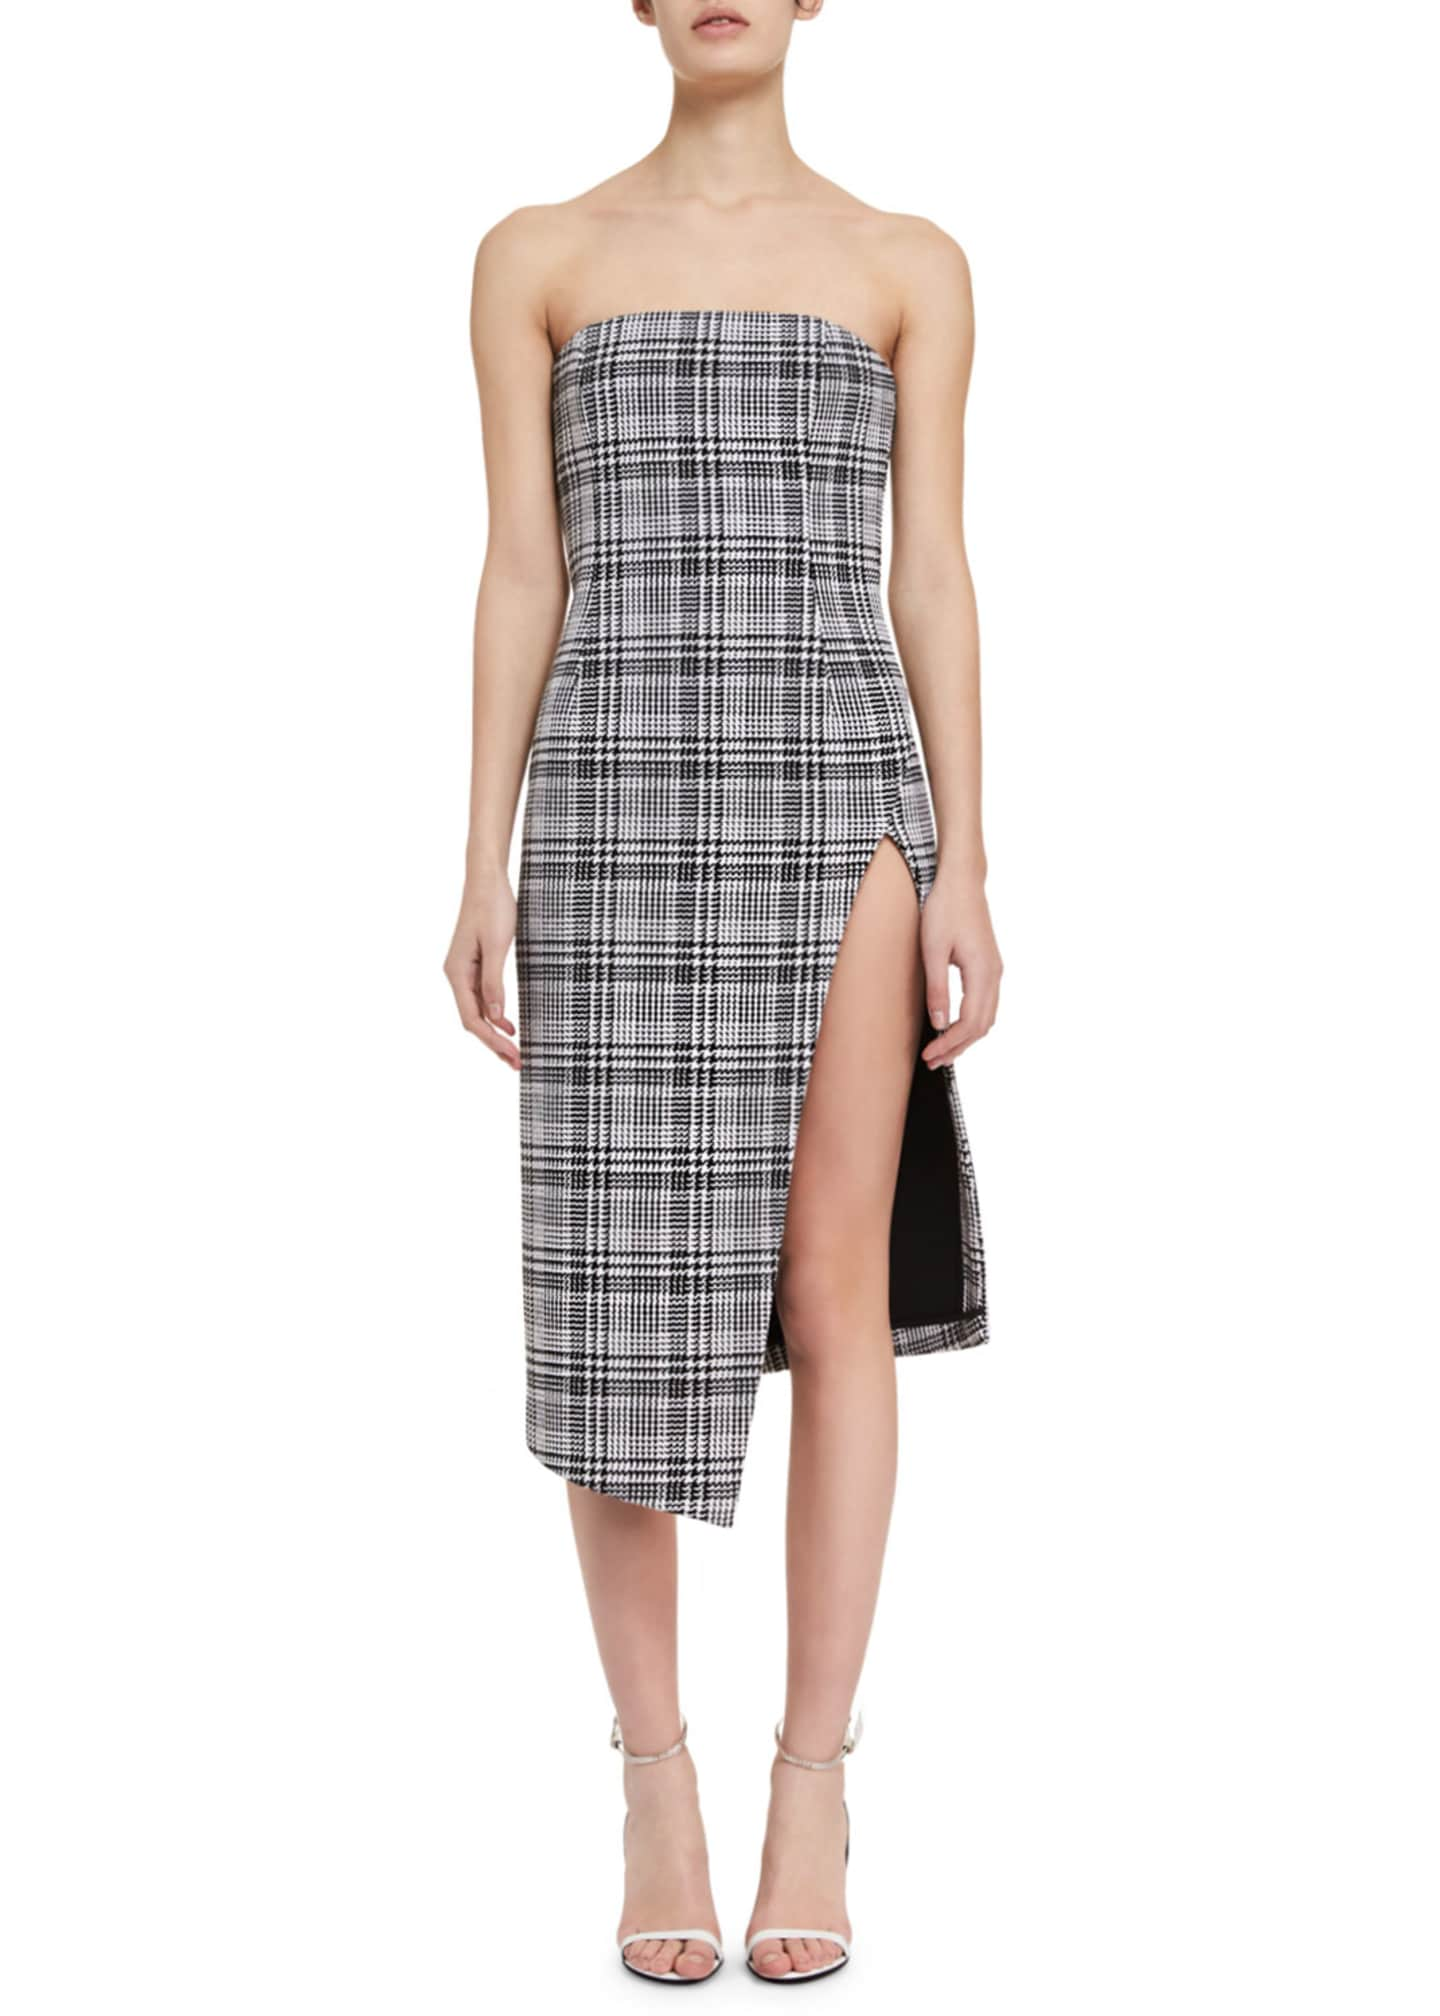 Off-White Strapless Plaid Bustier Dress